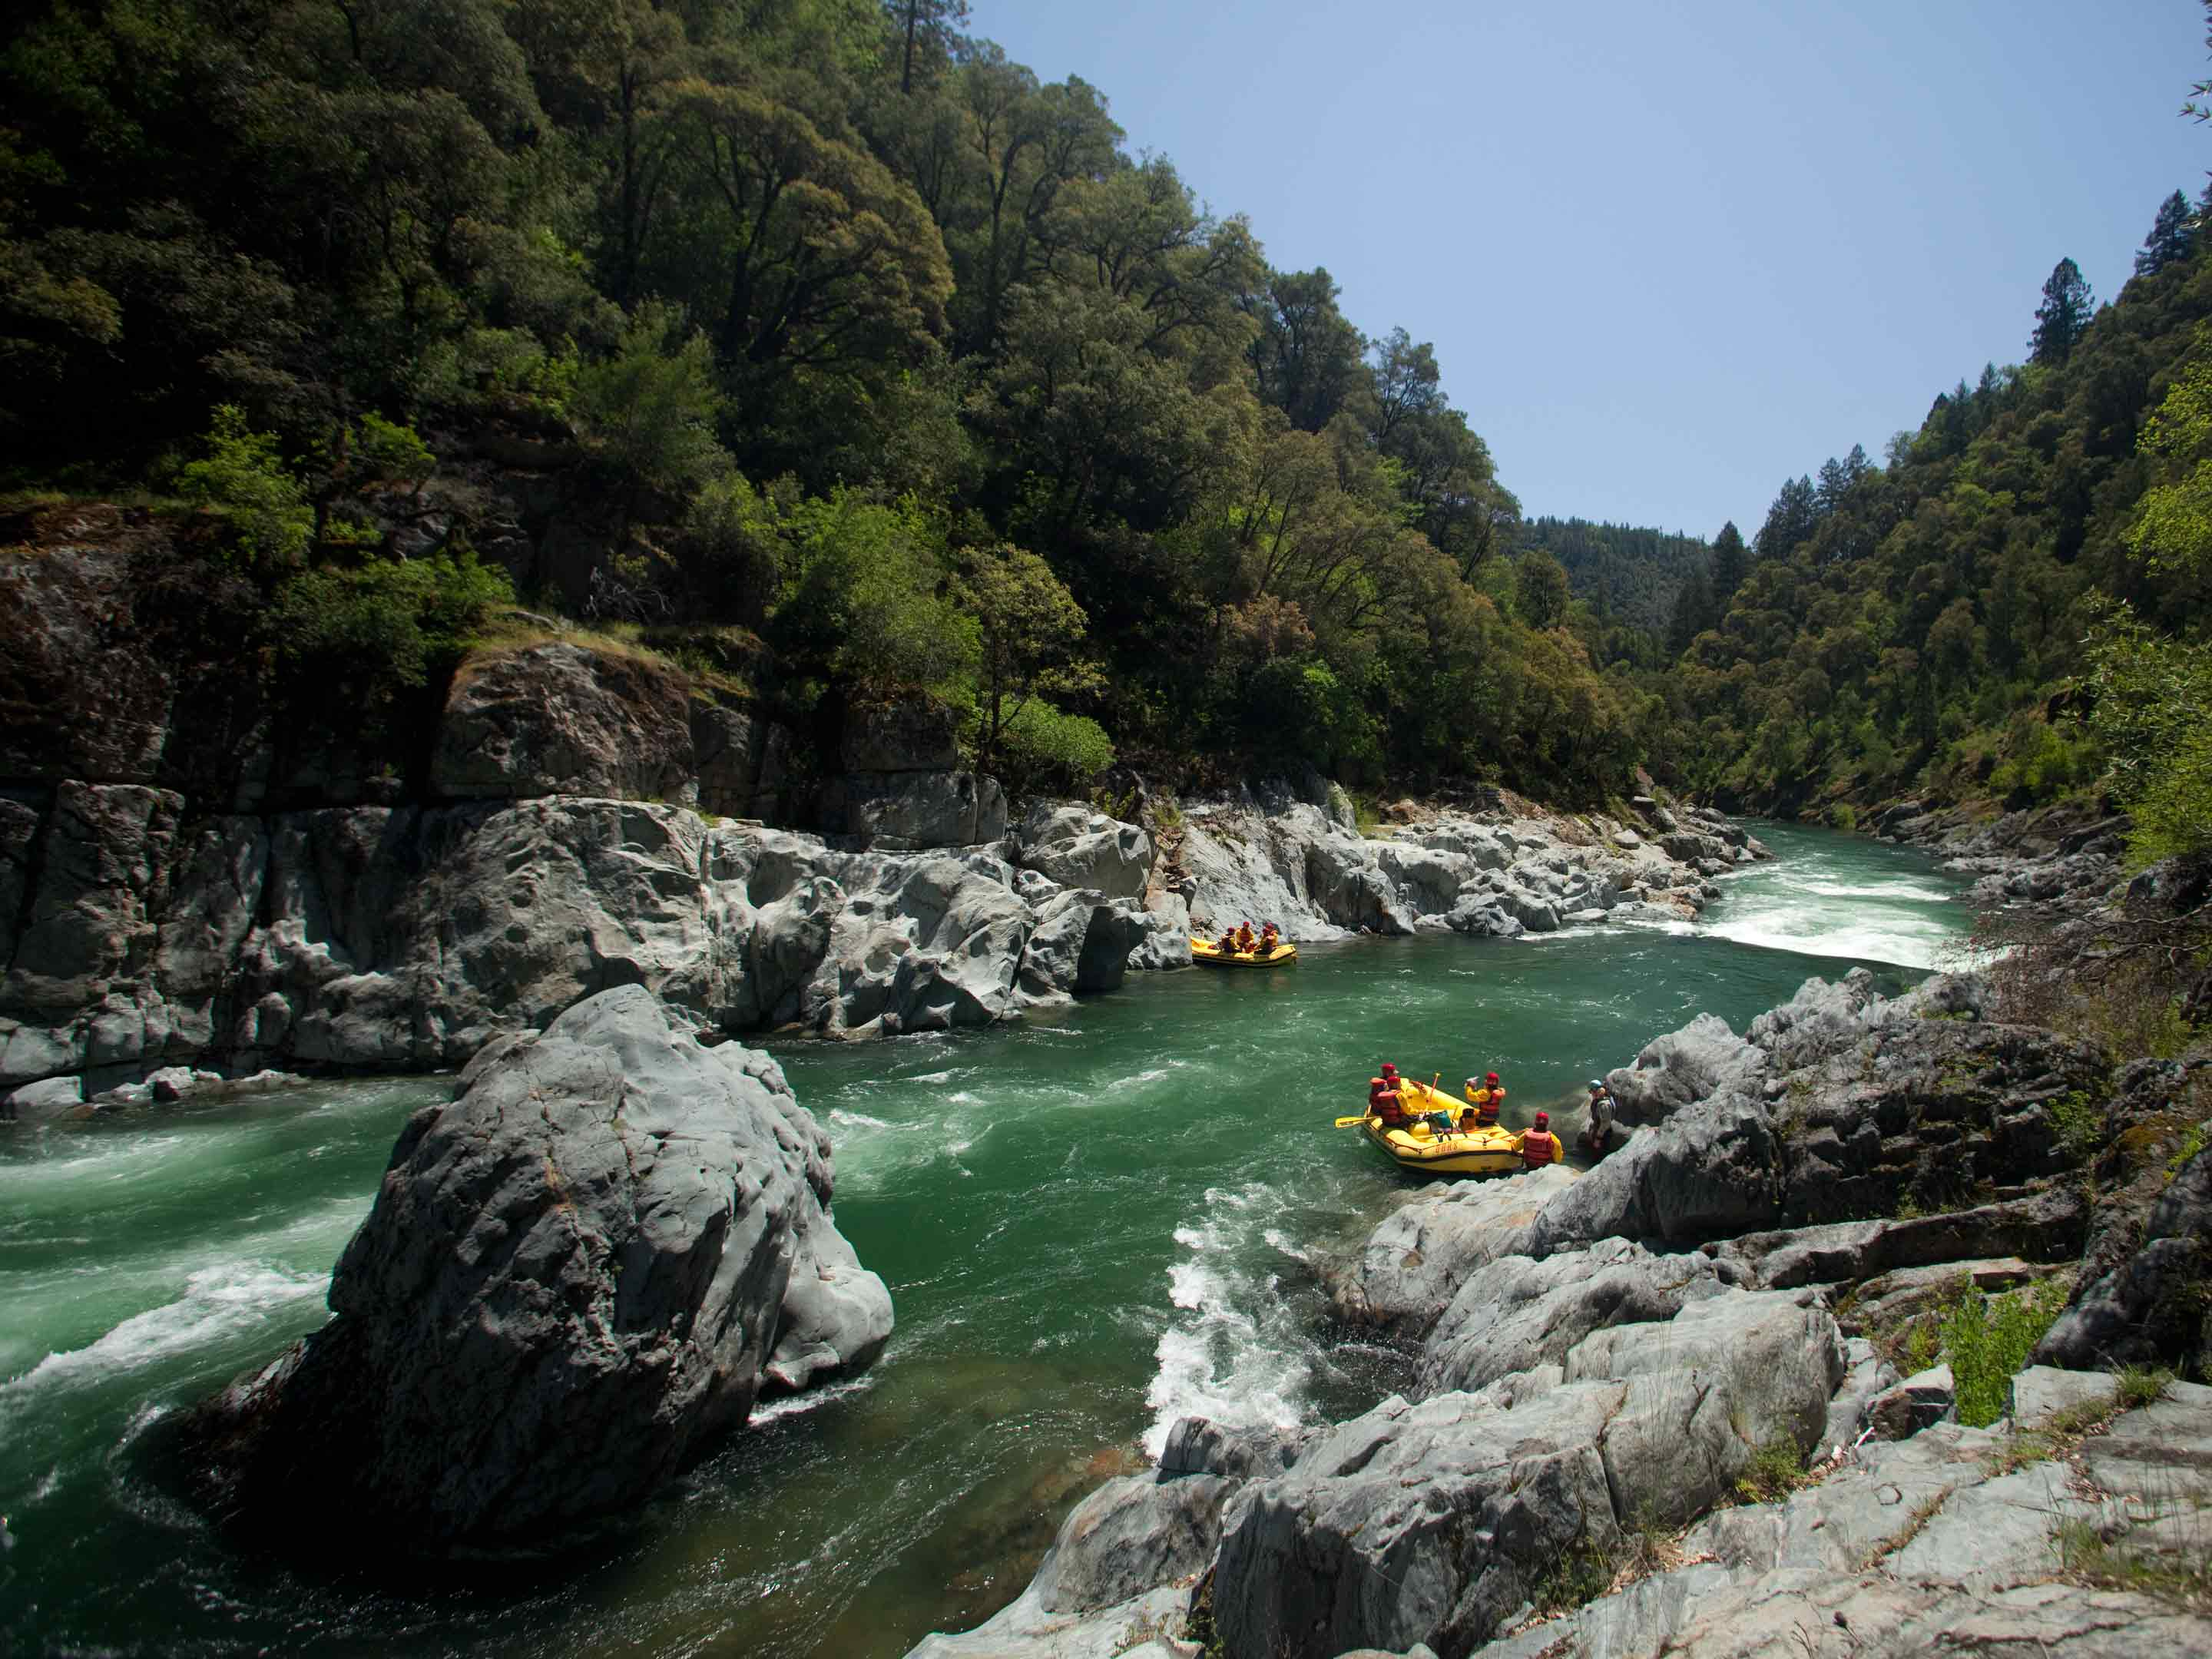 North Fork American River Whitewater Rafting In California